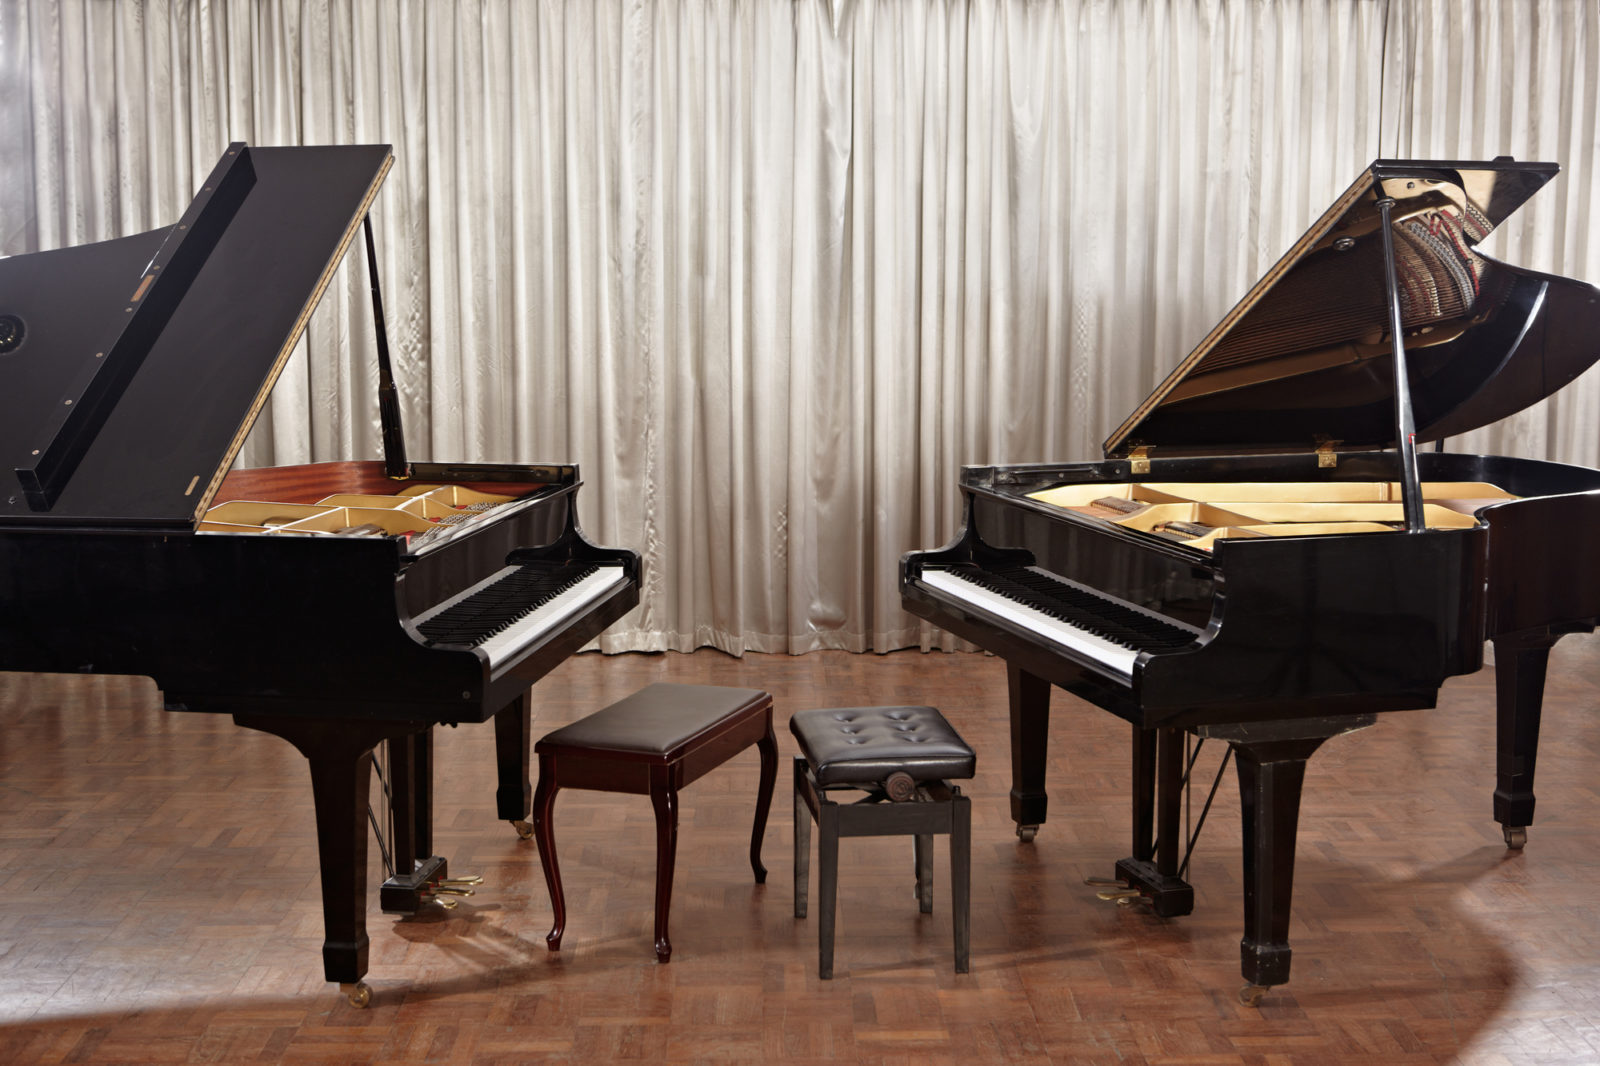 Dueling Pianos theme for events